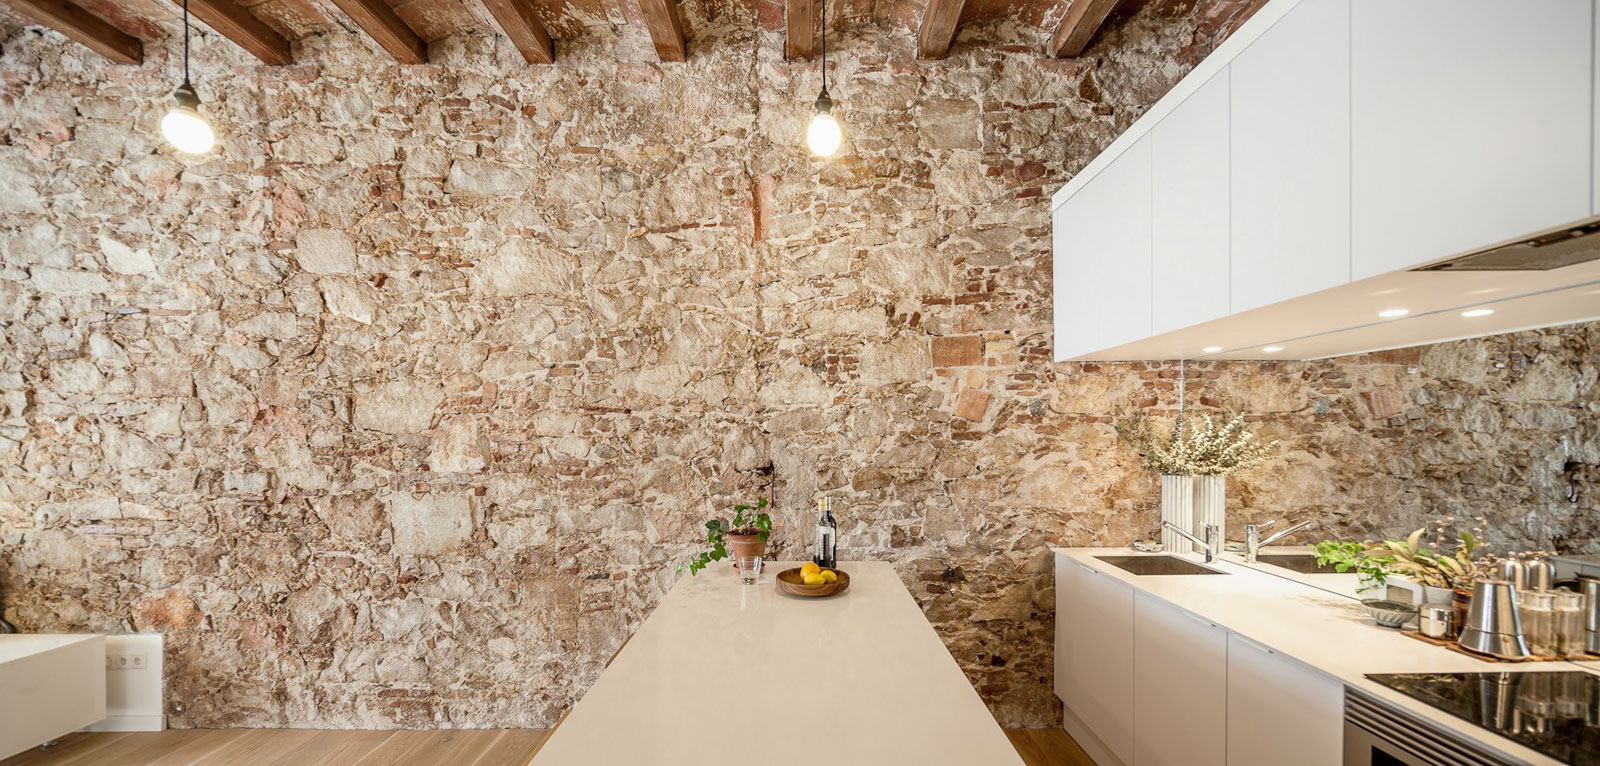 Renovation Apartment in Les Corts kitchen stone wall